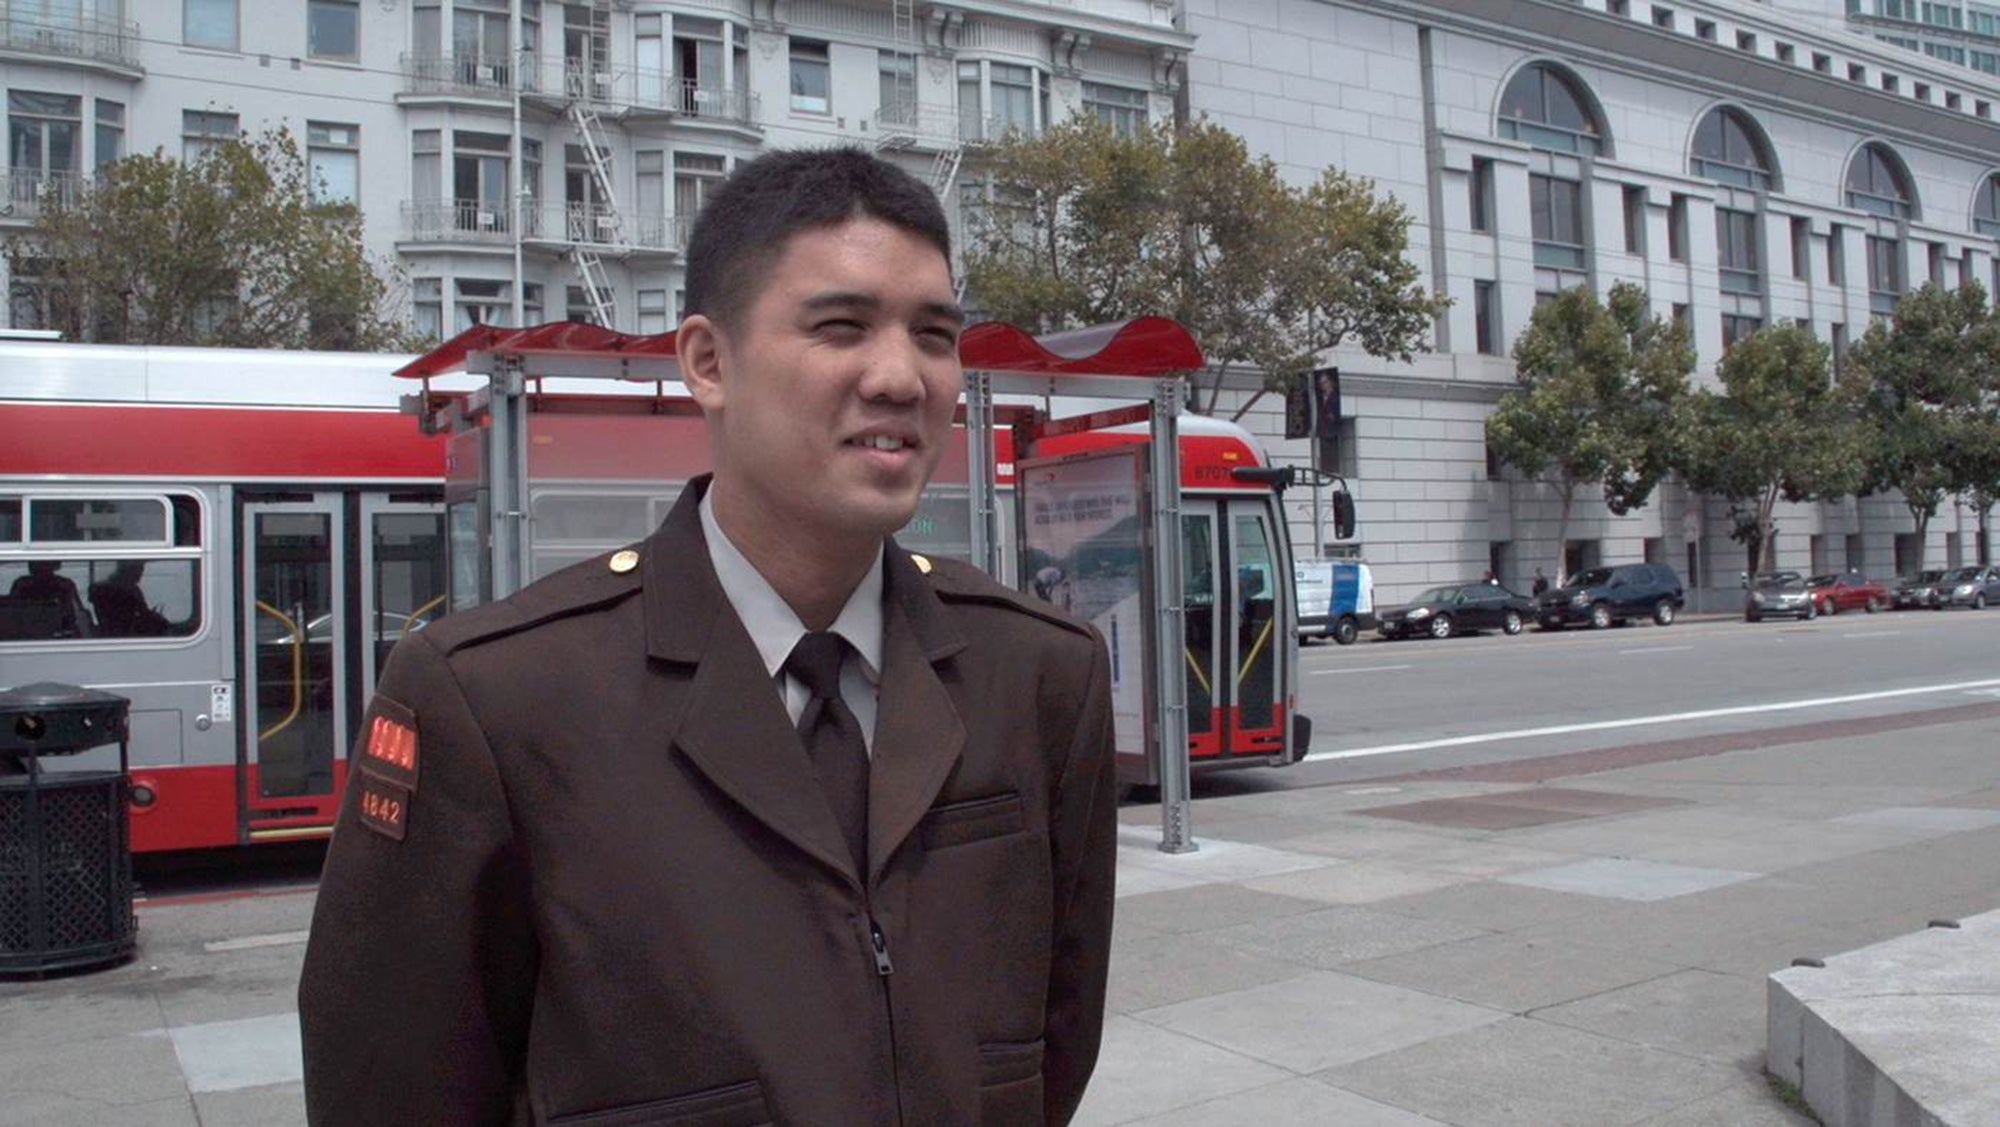 Jose Macasocol stands in uniform in San Francisco's Civic Center, with a Muni bus parked at a bus stop.